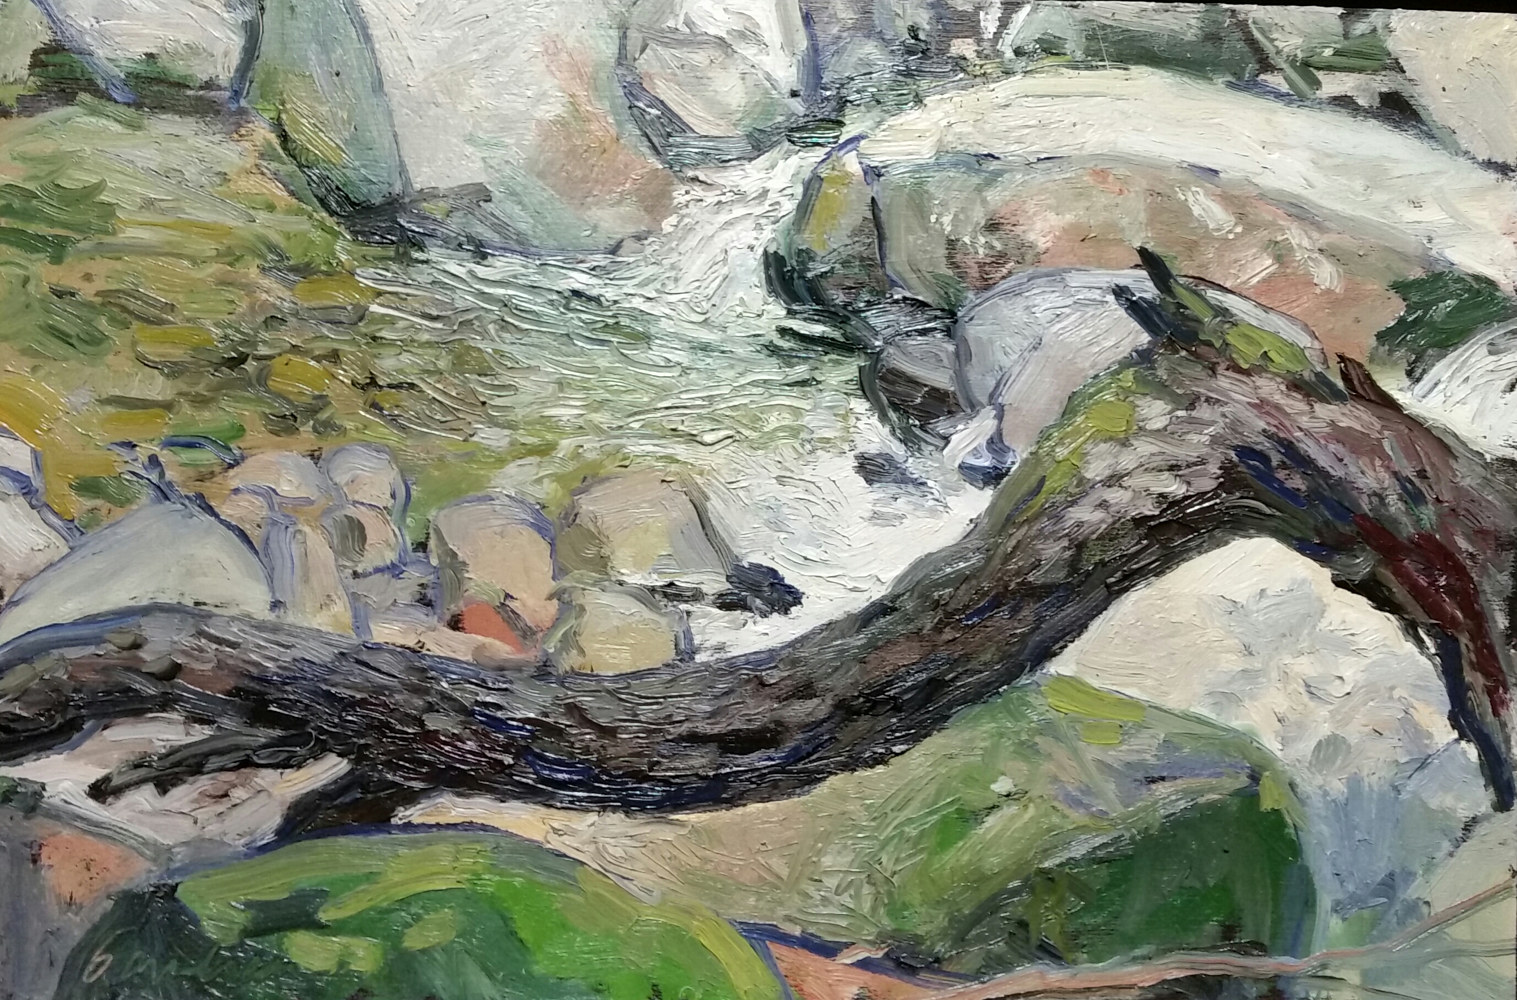 Painting along johns brook  12x24in oil by Michael  Gaudreau